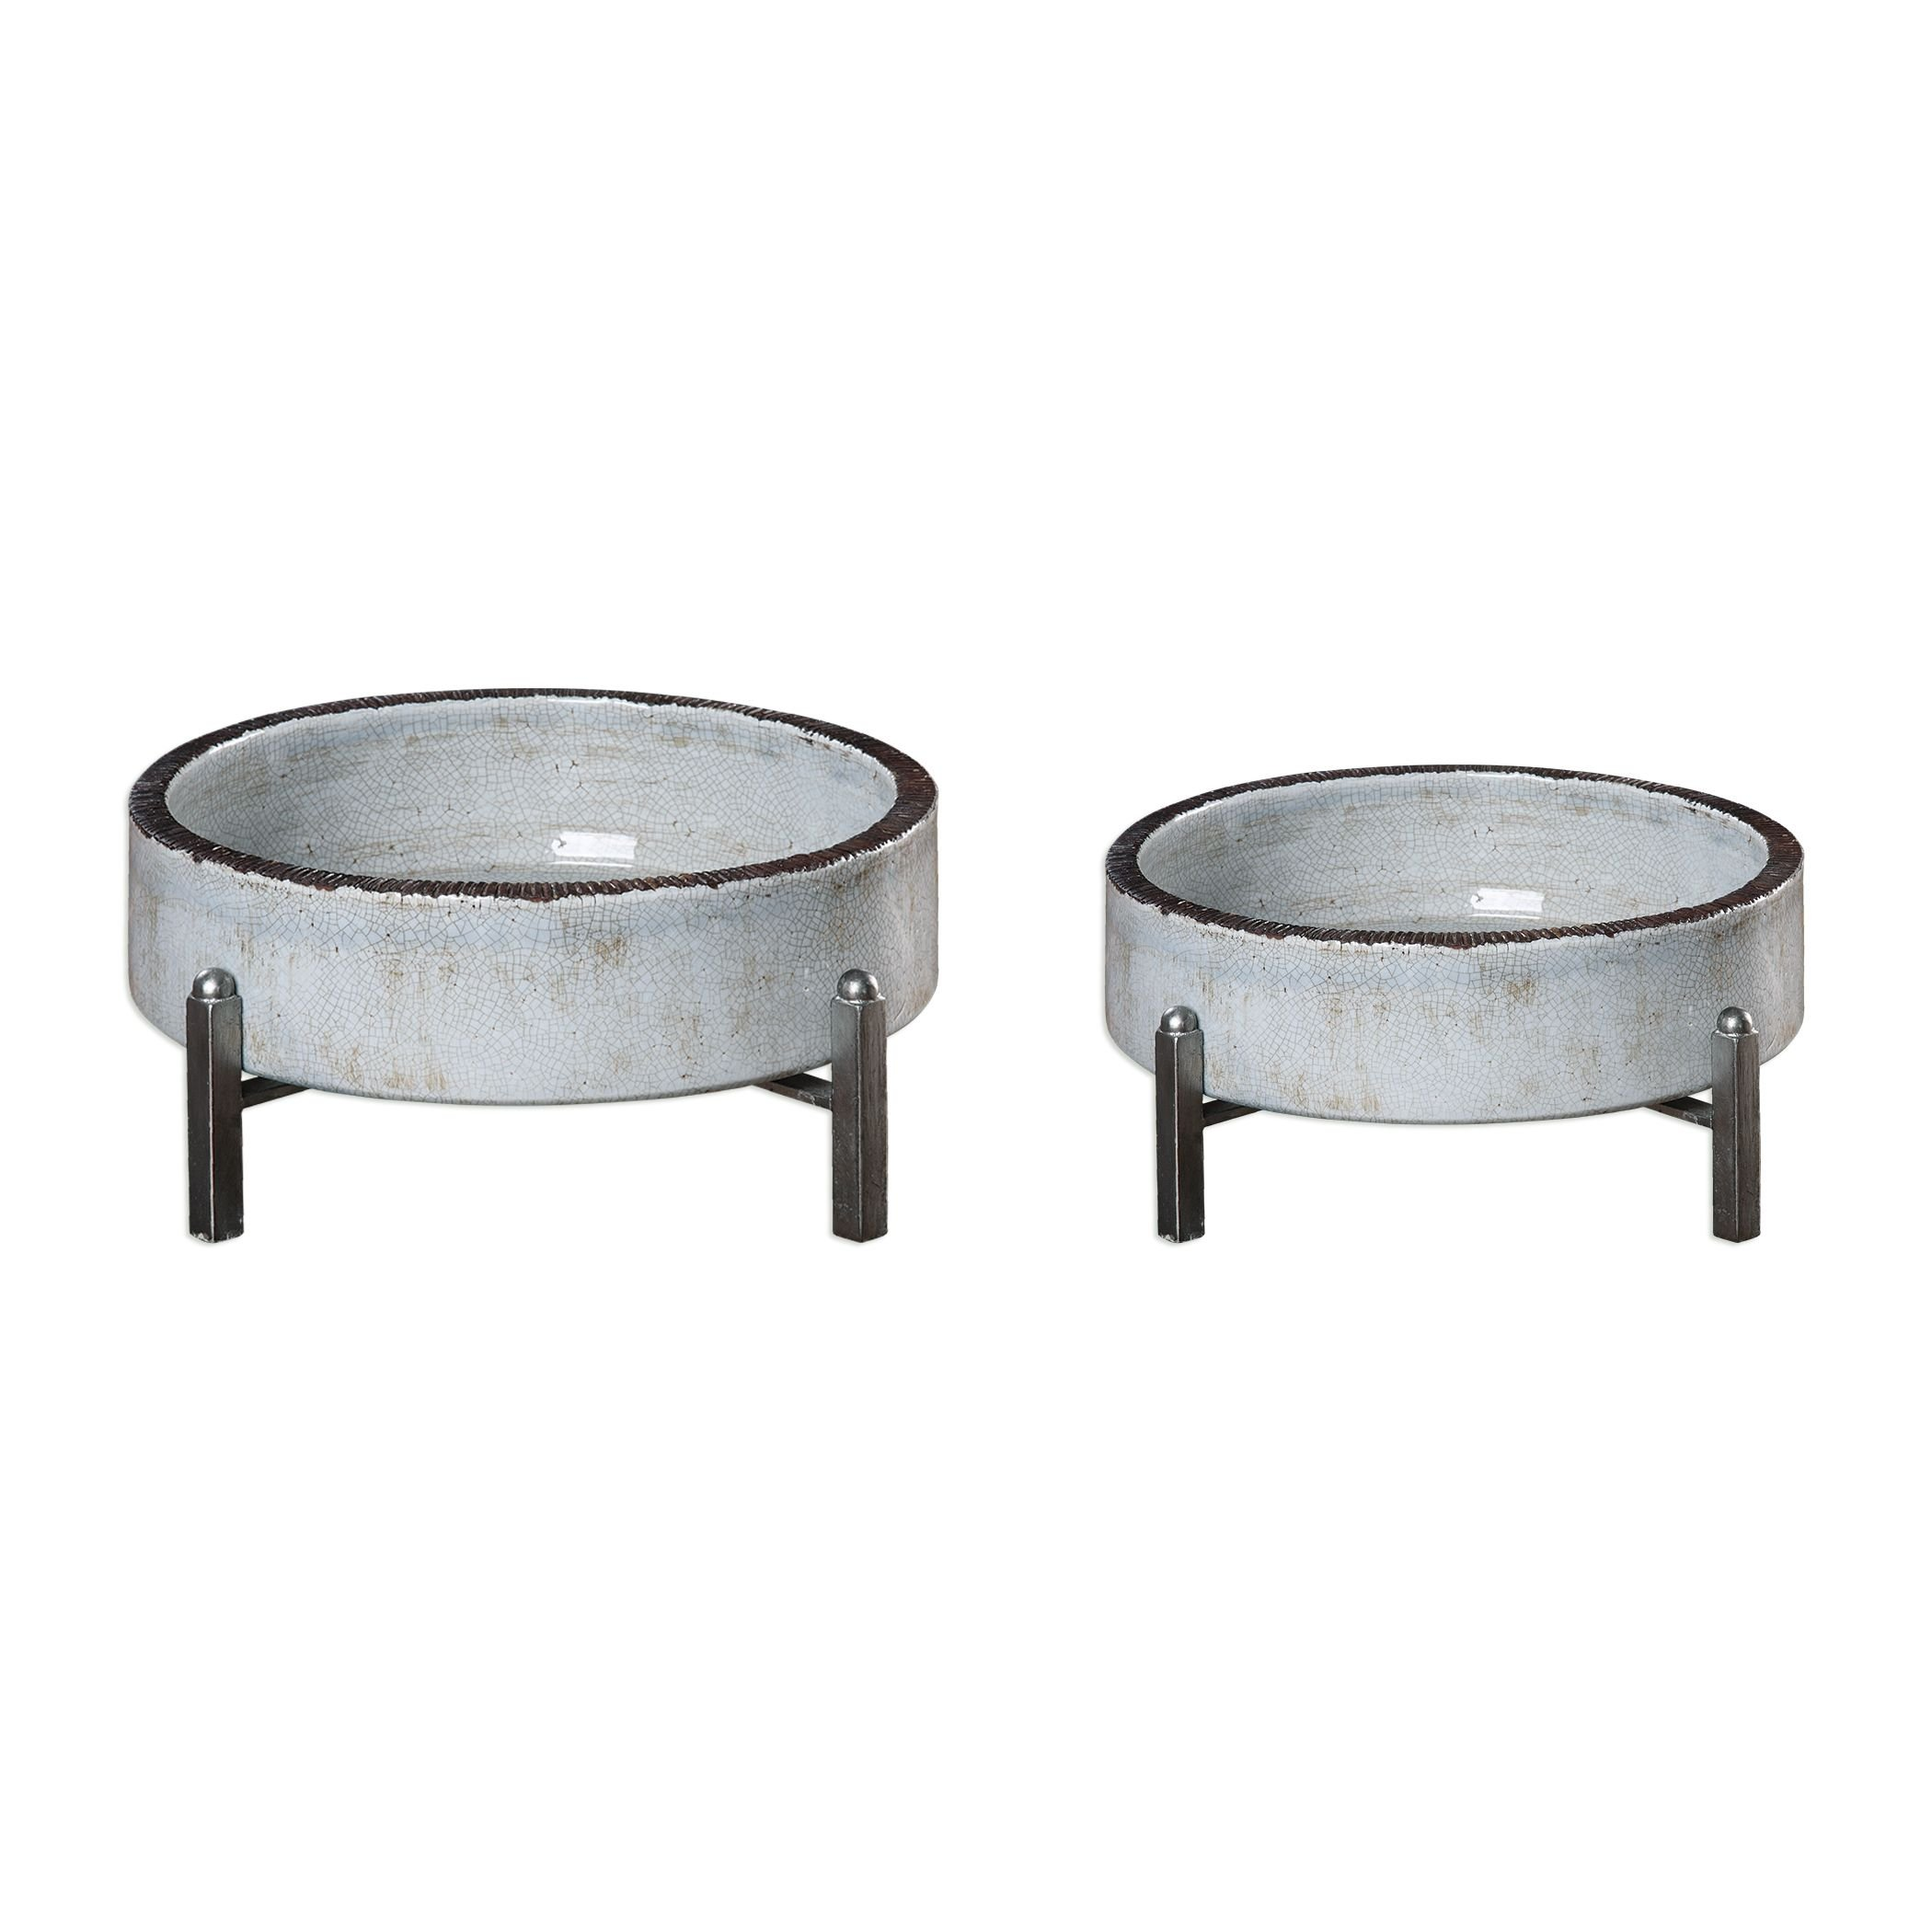 Uttermost 18731 Essie - 16.25'' Bowl (Set of 2), Pale Gray/Antiqued Silver Finish